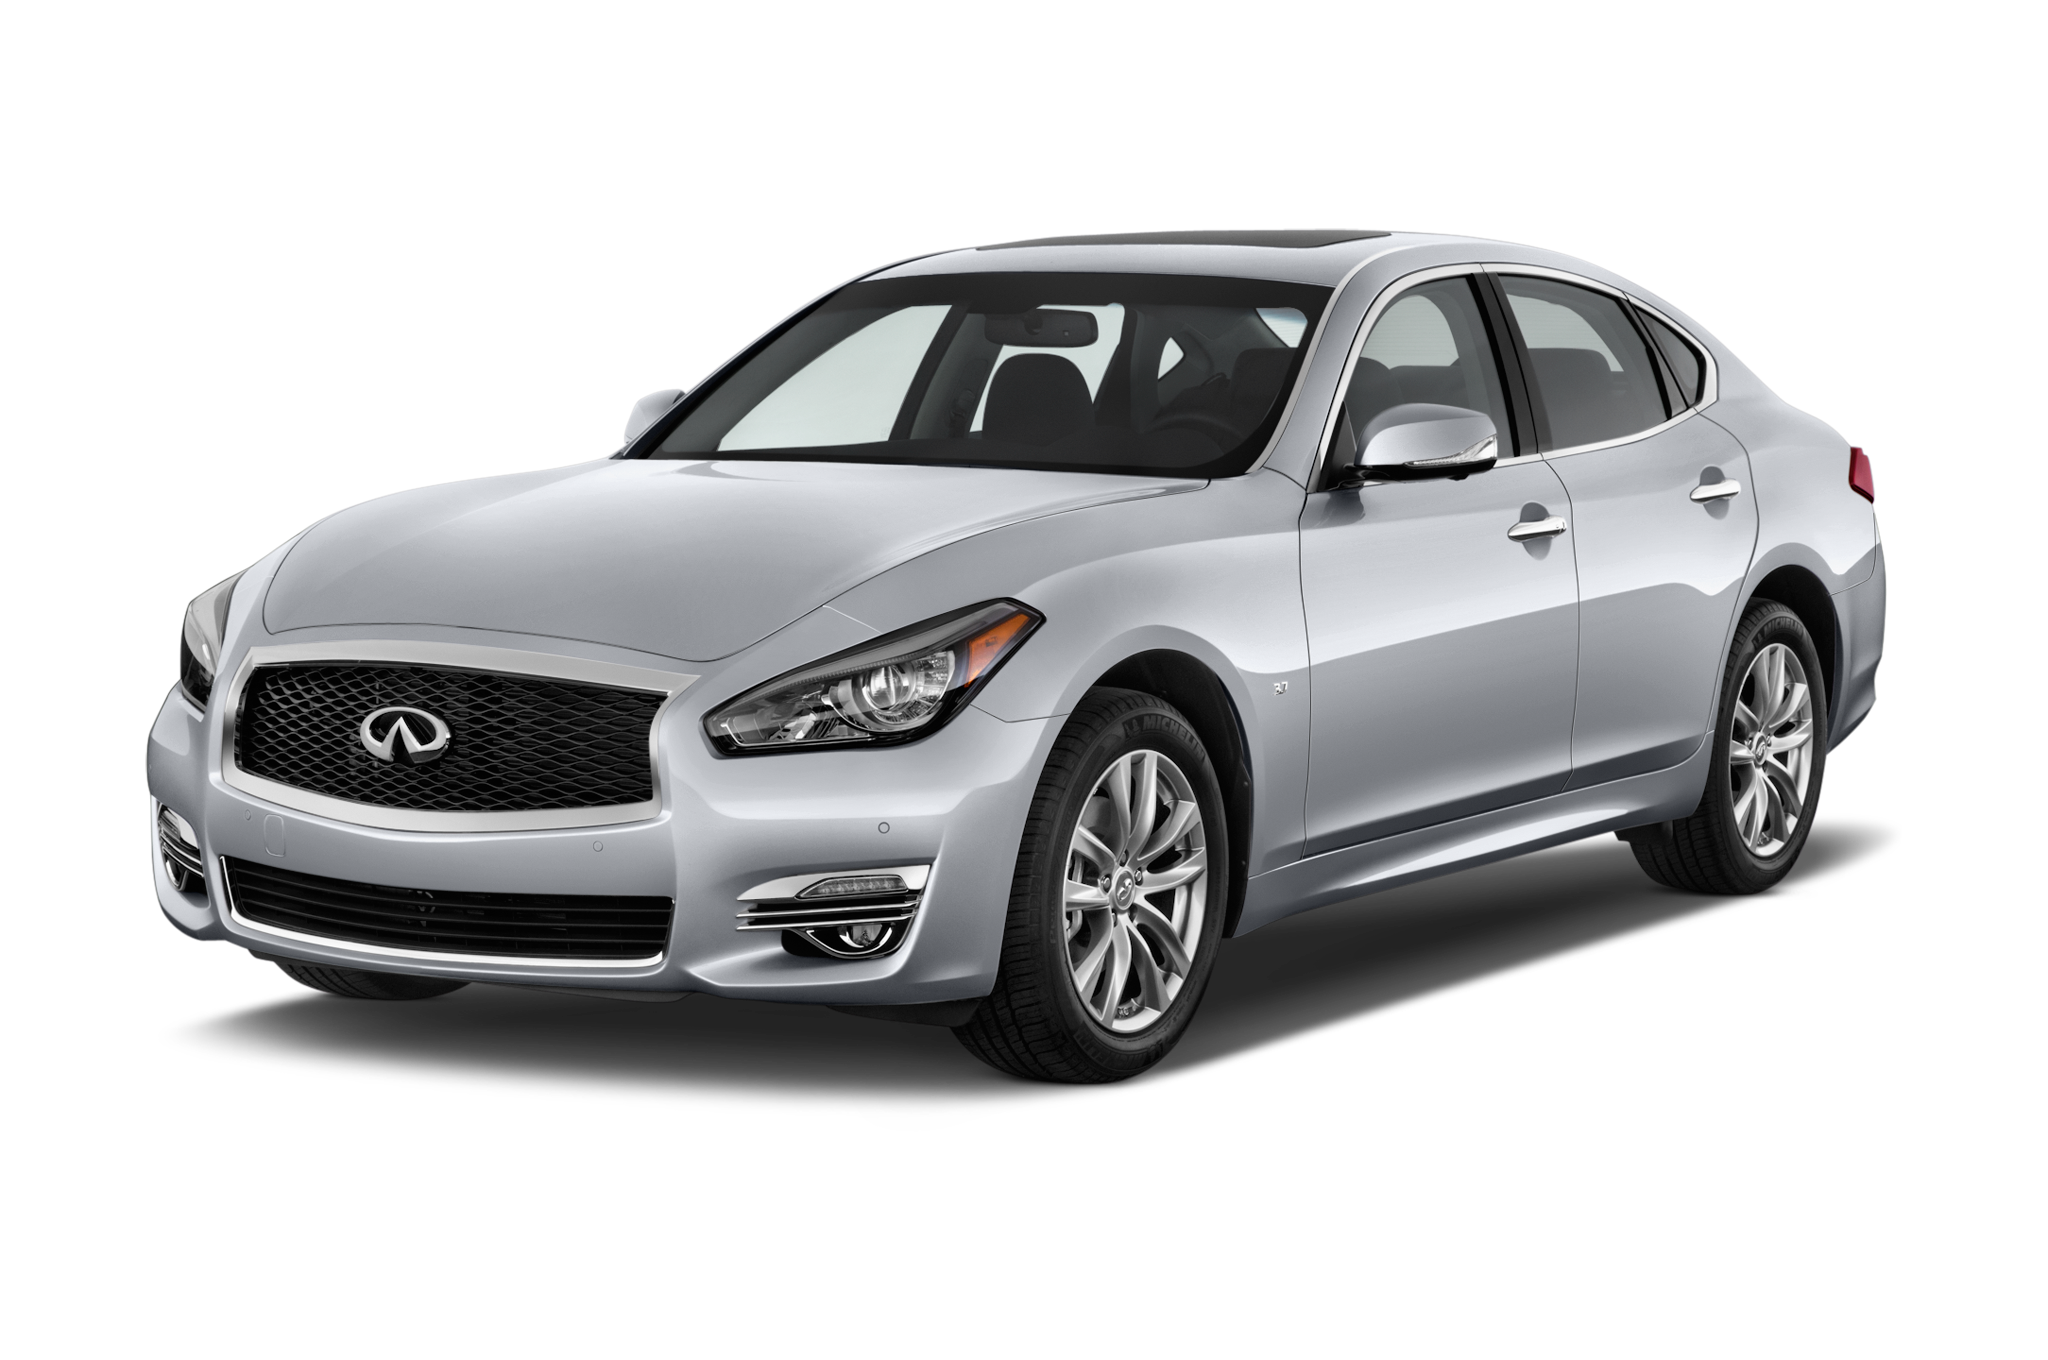 Infiniti Used Cars Inspirational 2015 Infiniti Q70 Reviews and Rating